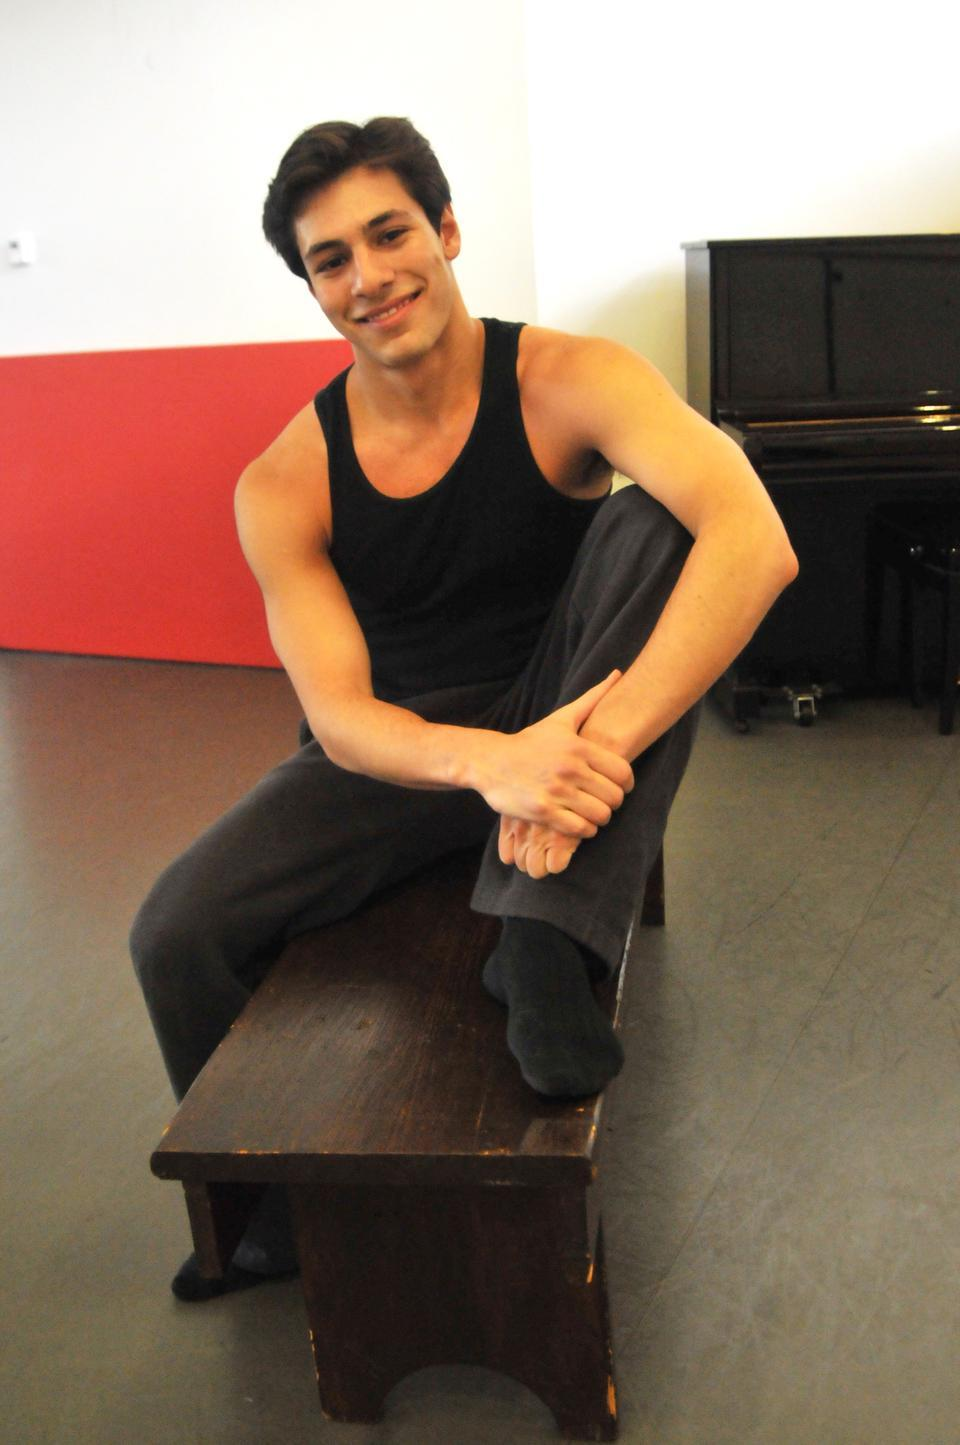 "Choreographer, performer, and director Frederick ""Ricky"" D. Kuperman '11 has choreographed numerous productions and worked with many organizations on campus, including the Harvard Ballet Company, the Harvard Contemporary Dance Ensemble, and the Harvard-Radcliffe Dramatic Club."